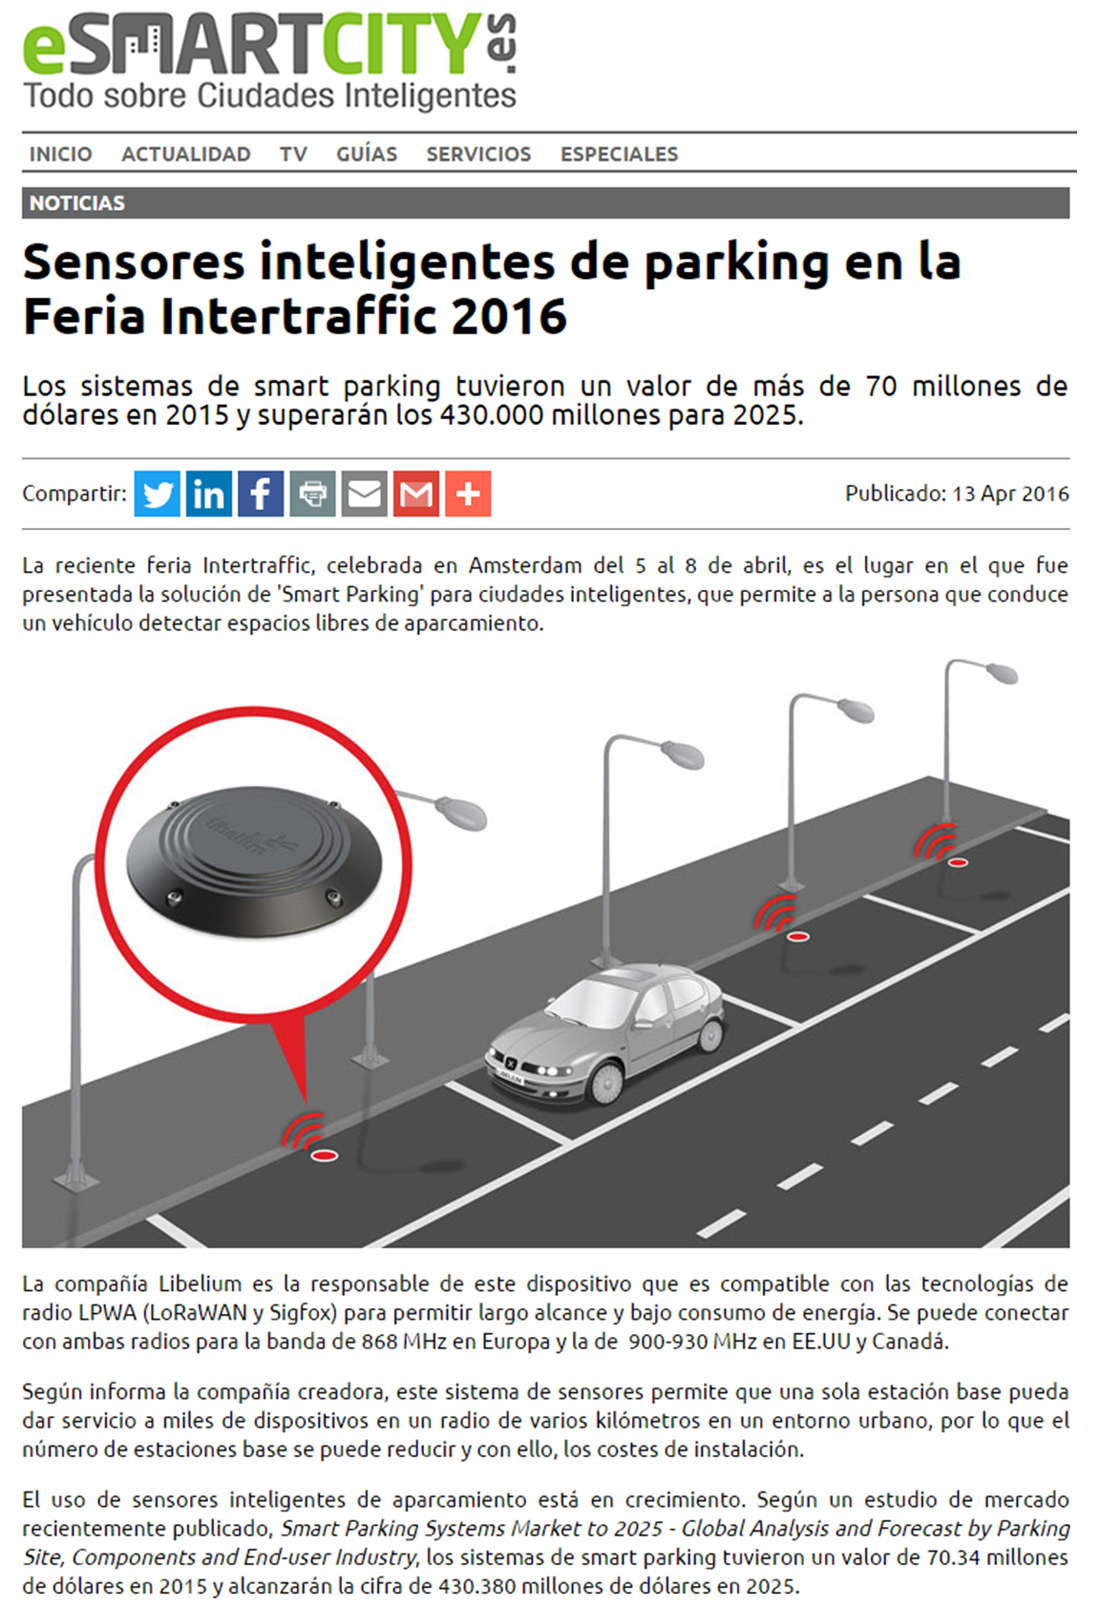 Esmartcity.es – Feria Intertraffic 2016